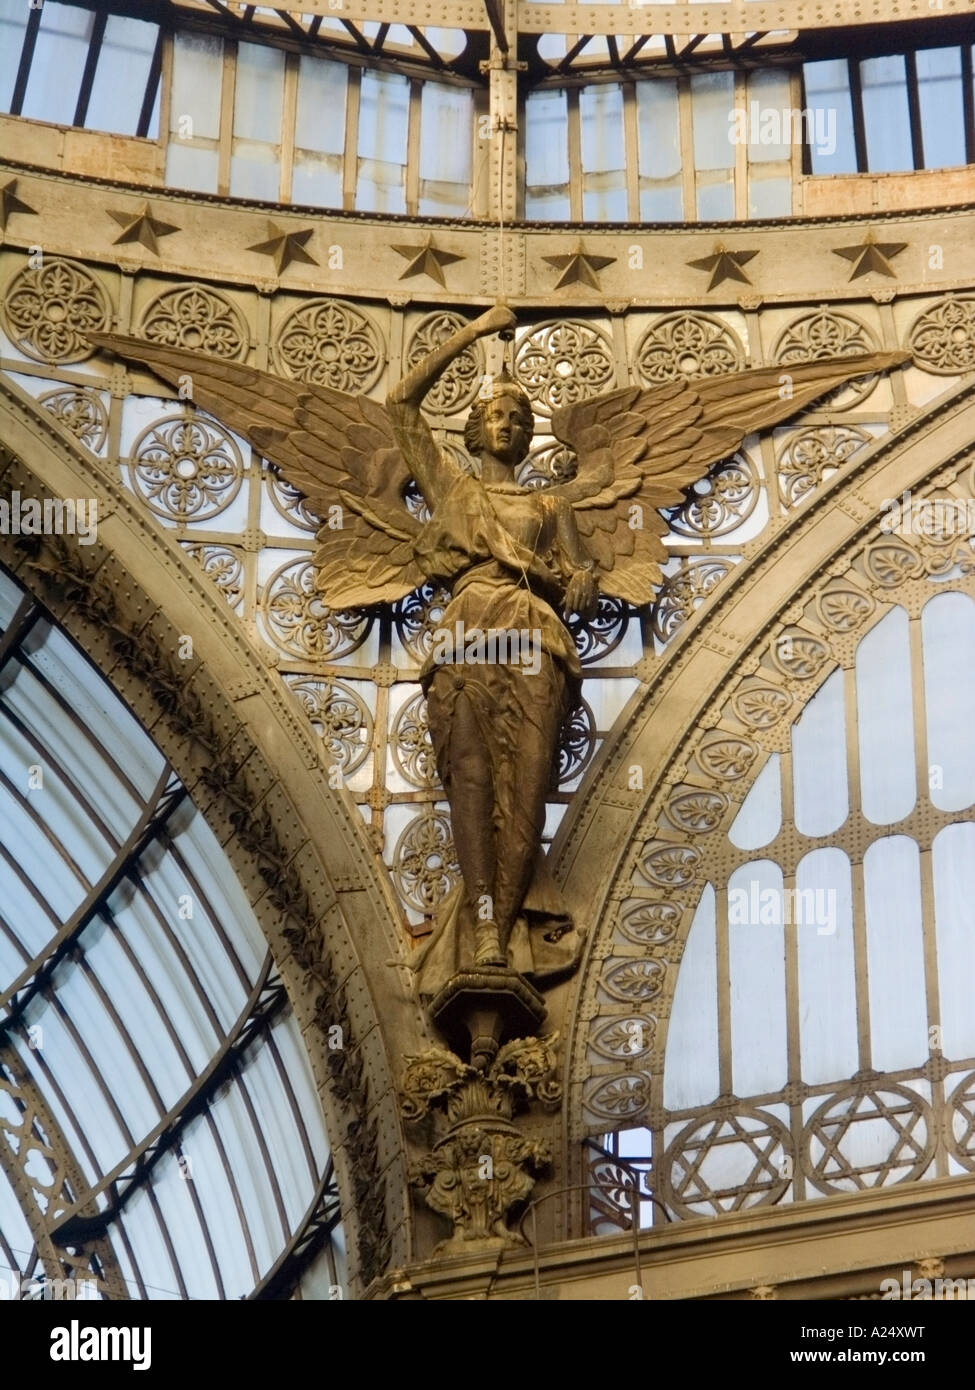 An angel metal sculpture decoration in the gallery umberto, XIX sec, Naples, south of italy, EU - Stock Image